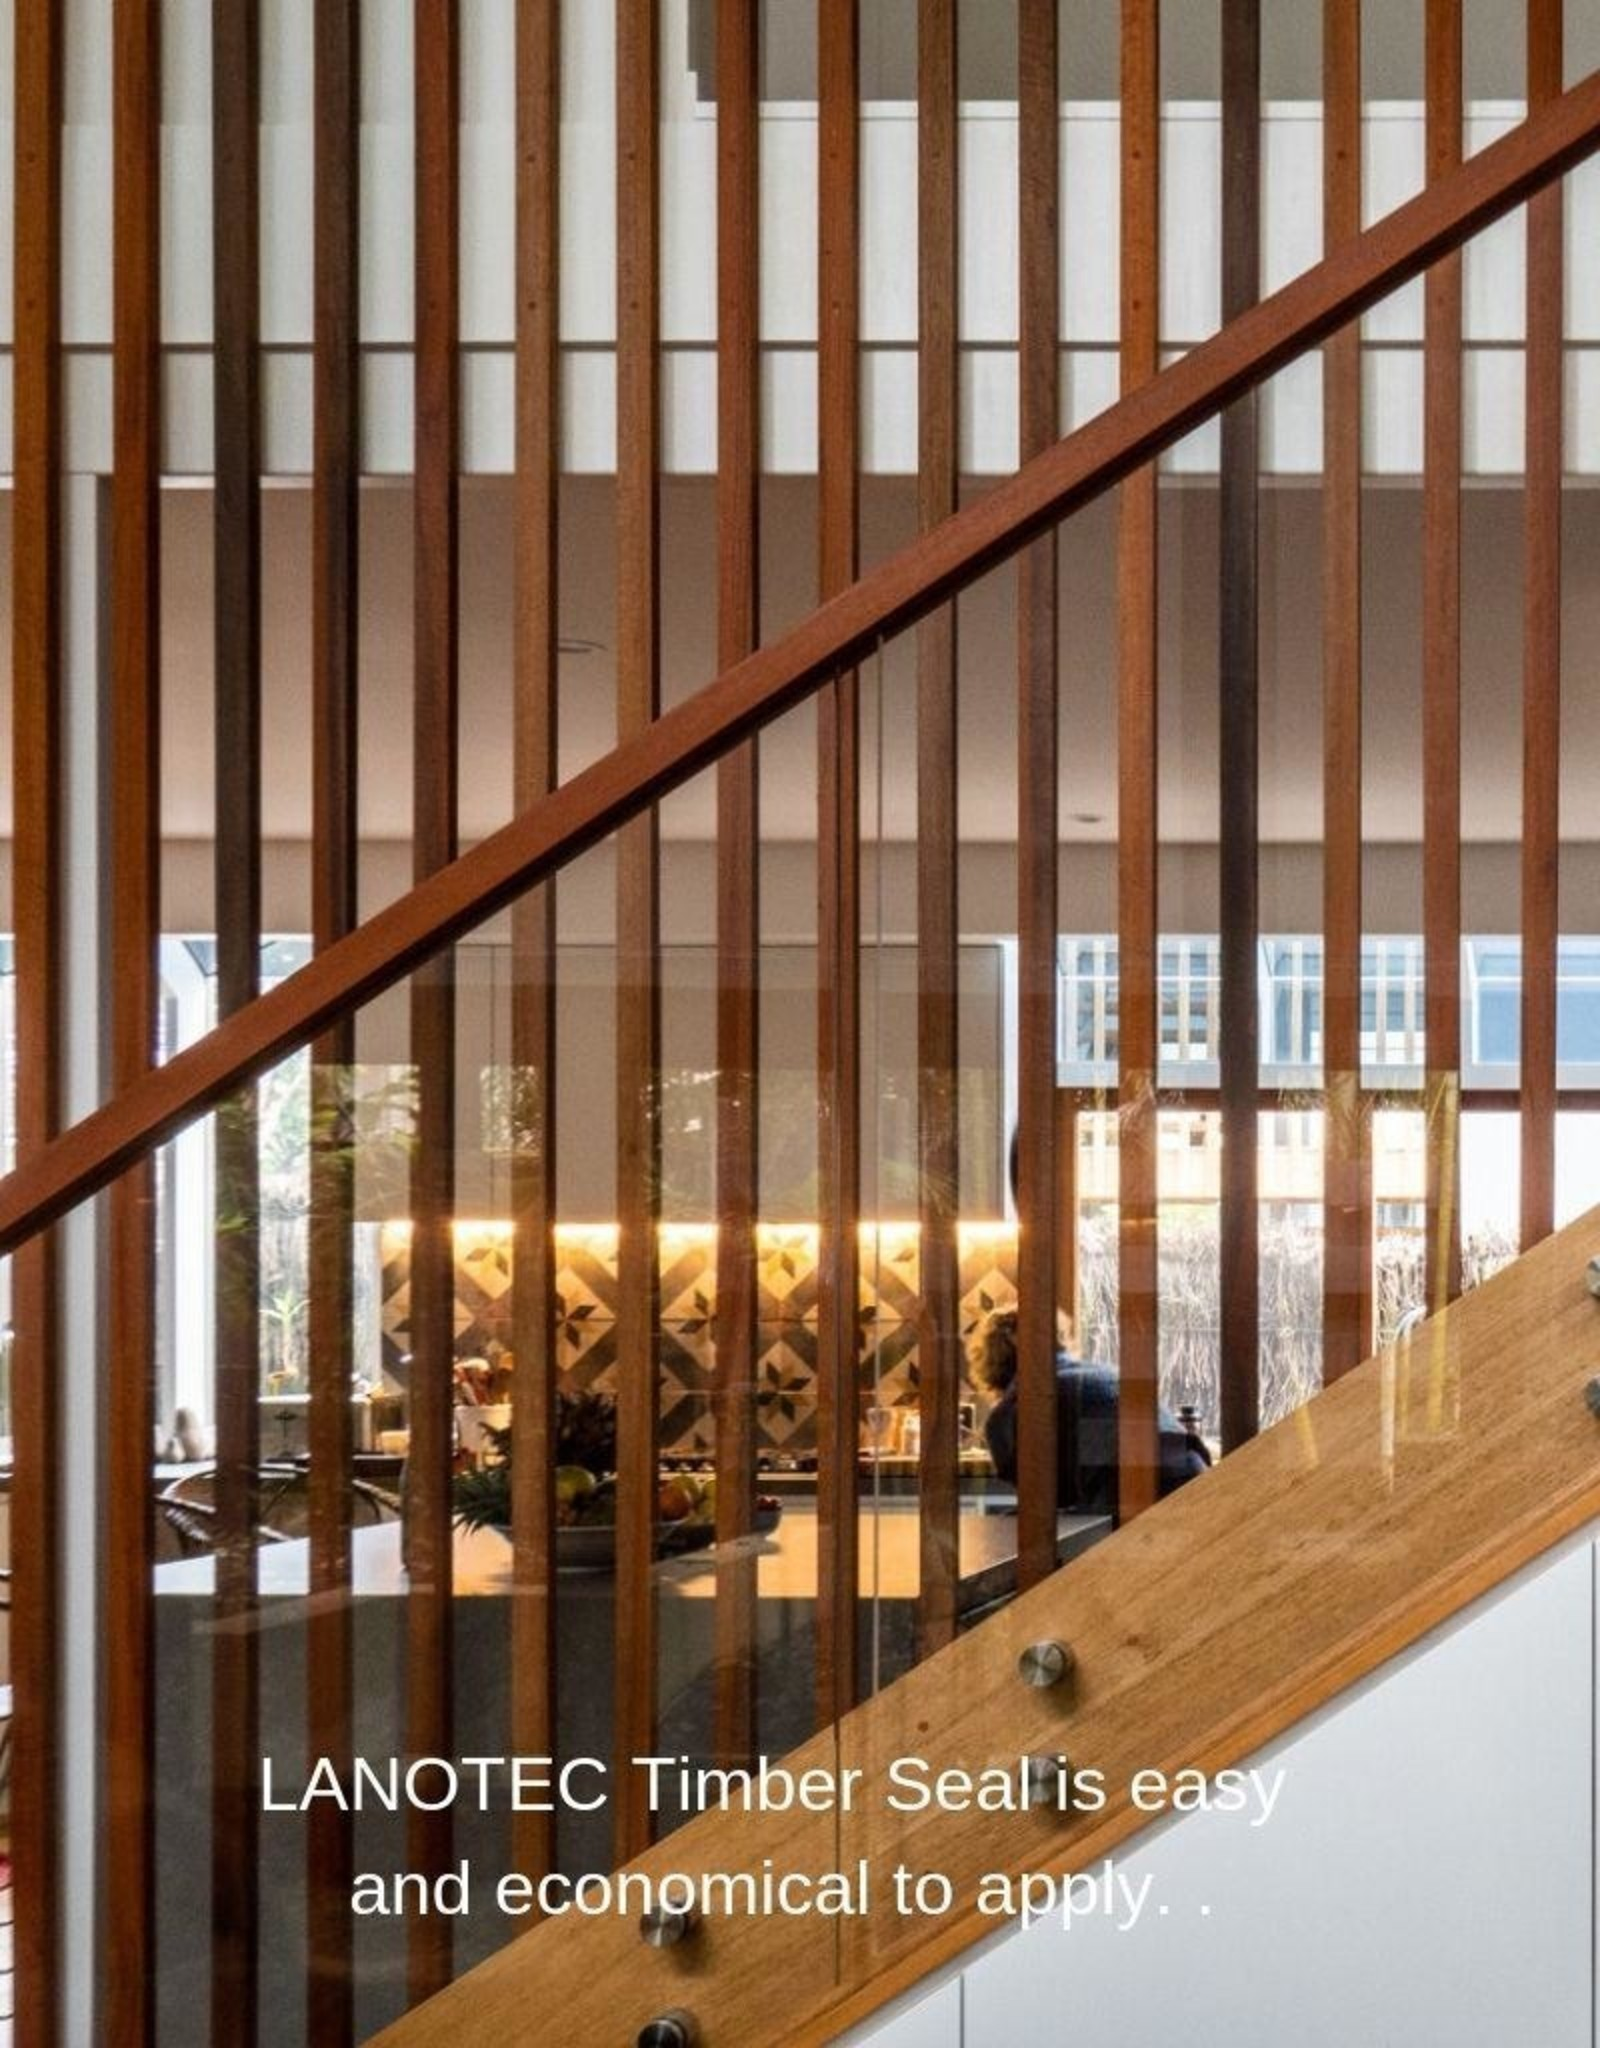 LANOTEC Timber Seal